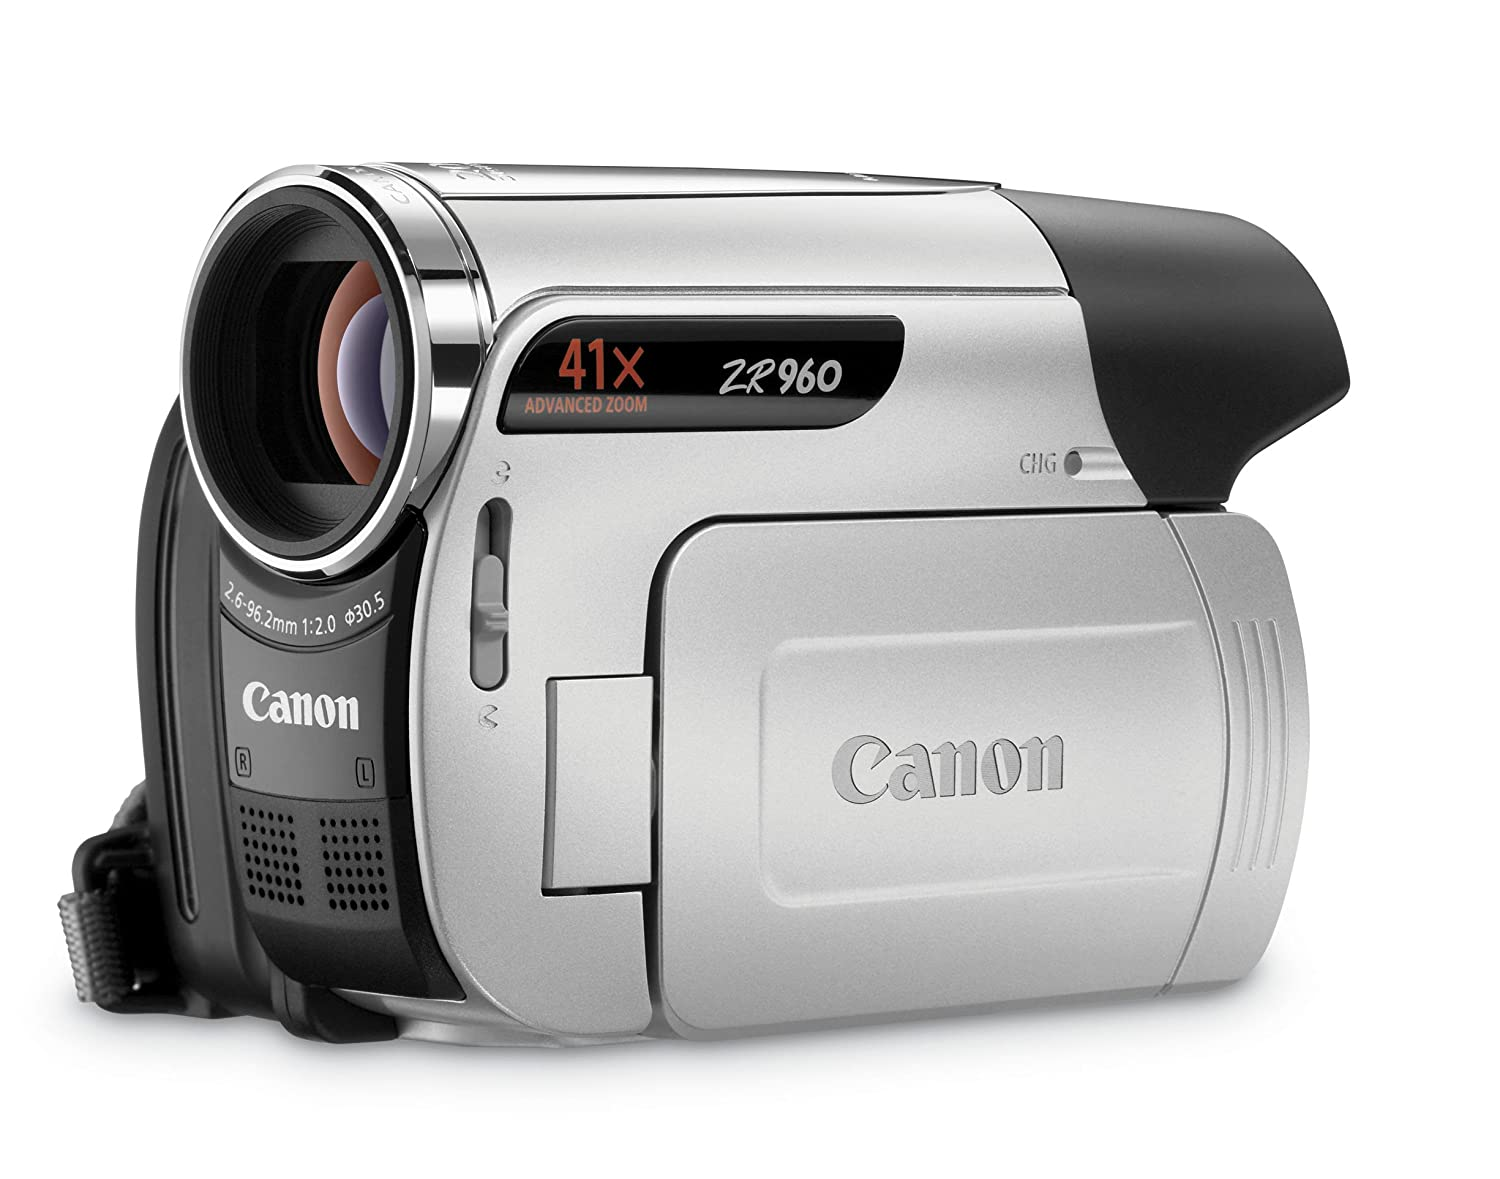 Amazon.com : Canon ZR960 MiniDV Camcorder w/41x Advanced Zoom - 2009 MODEL  (Discontinued by Manufacturer) : Mini Dv Digital Camcorders : Camera & Photo